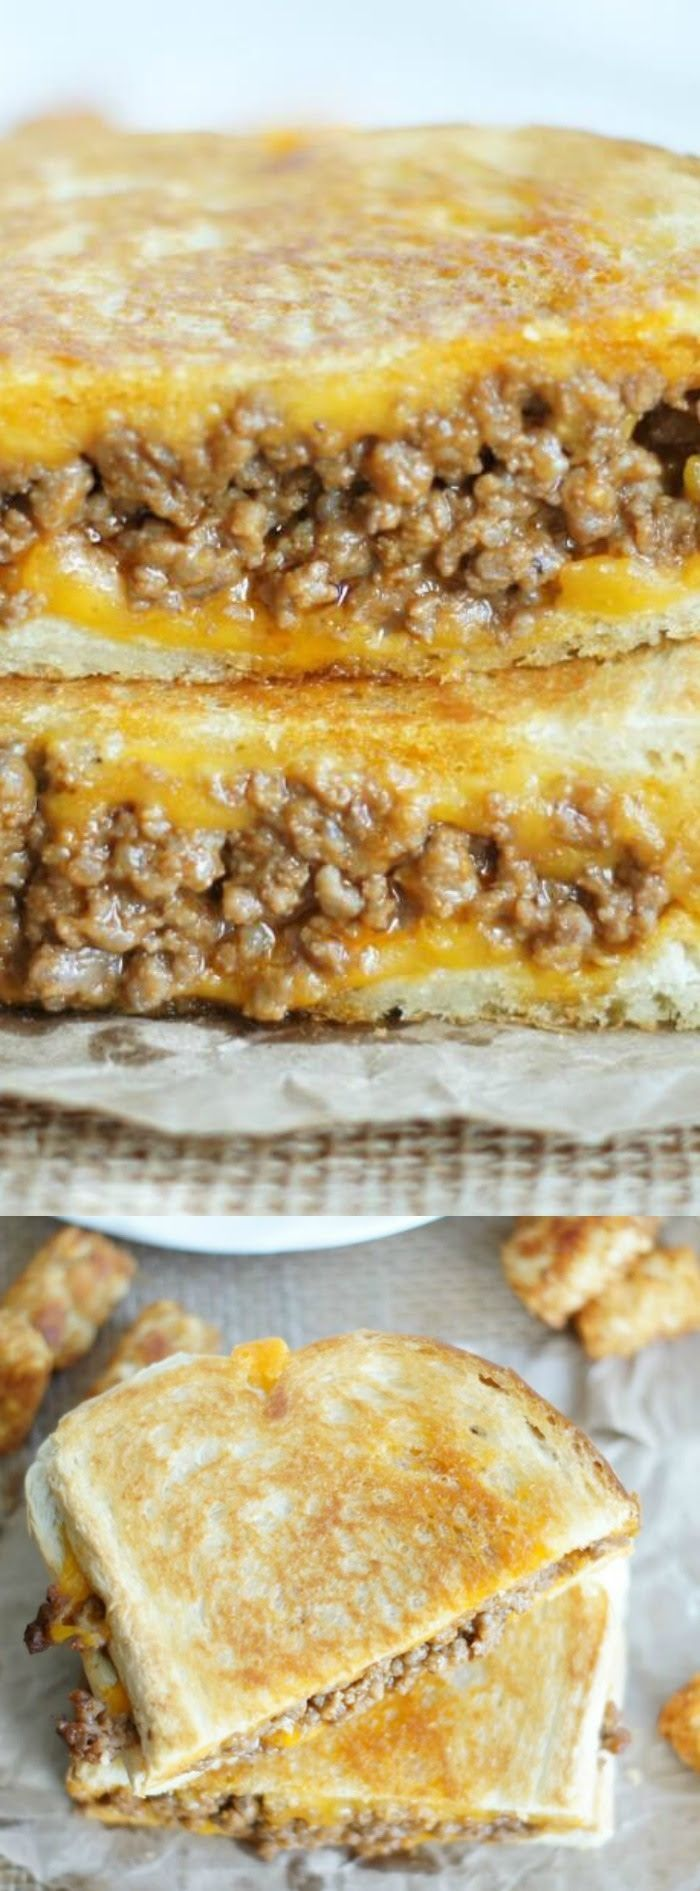 GRILLED CHEESE SLOPPY JOES. uh yes please... my mouth is salivating.